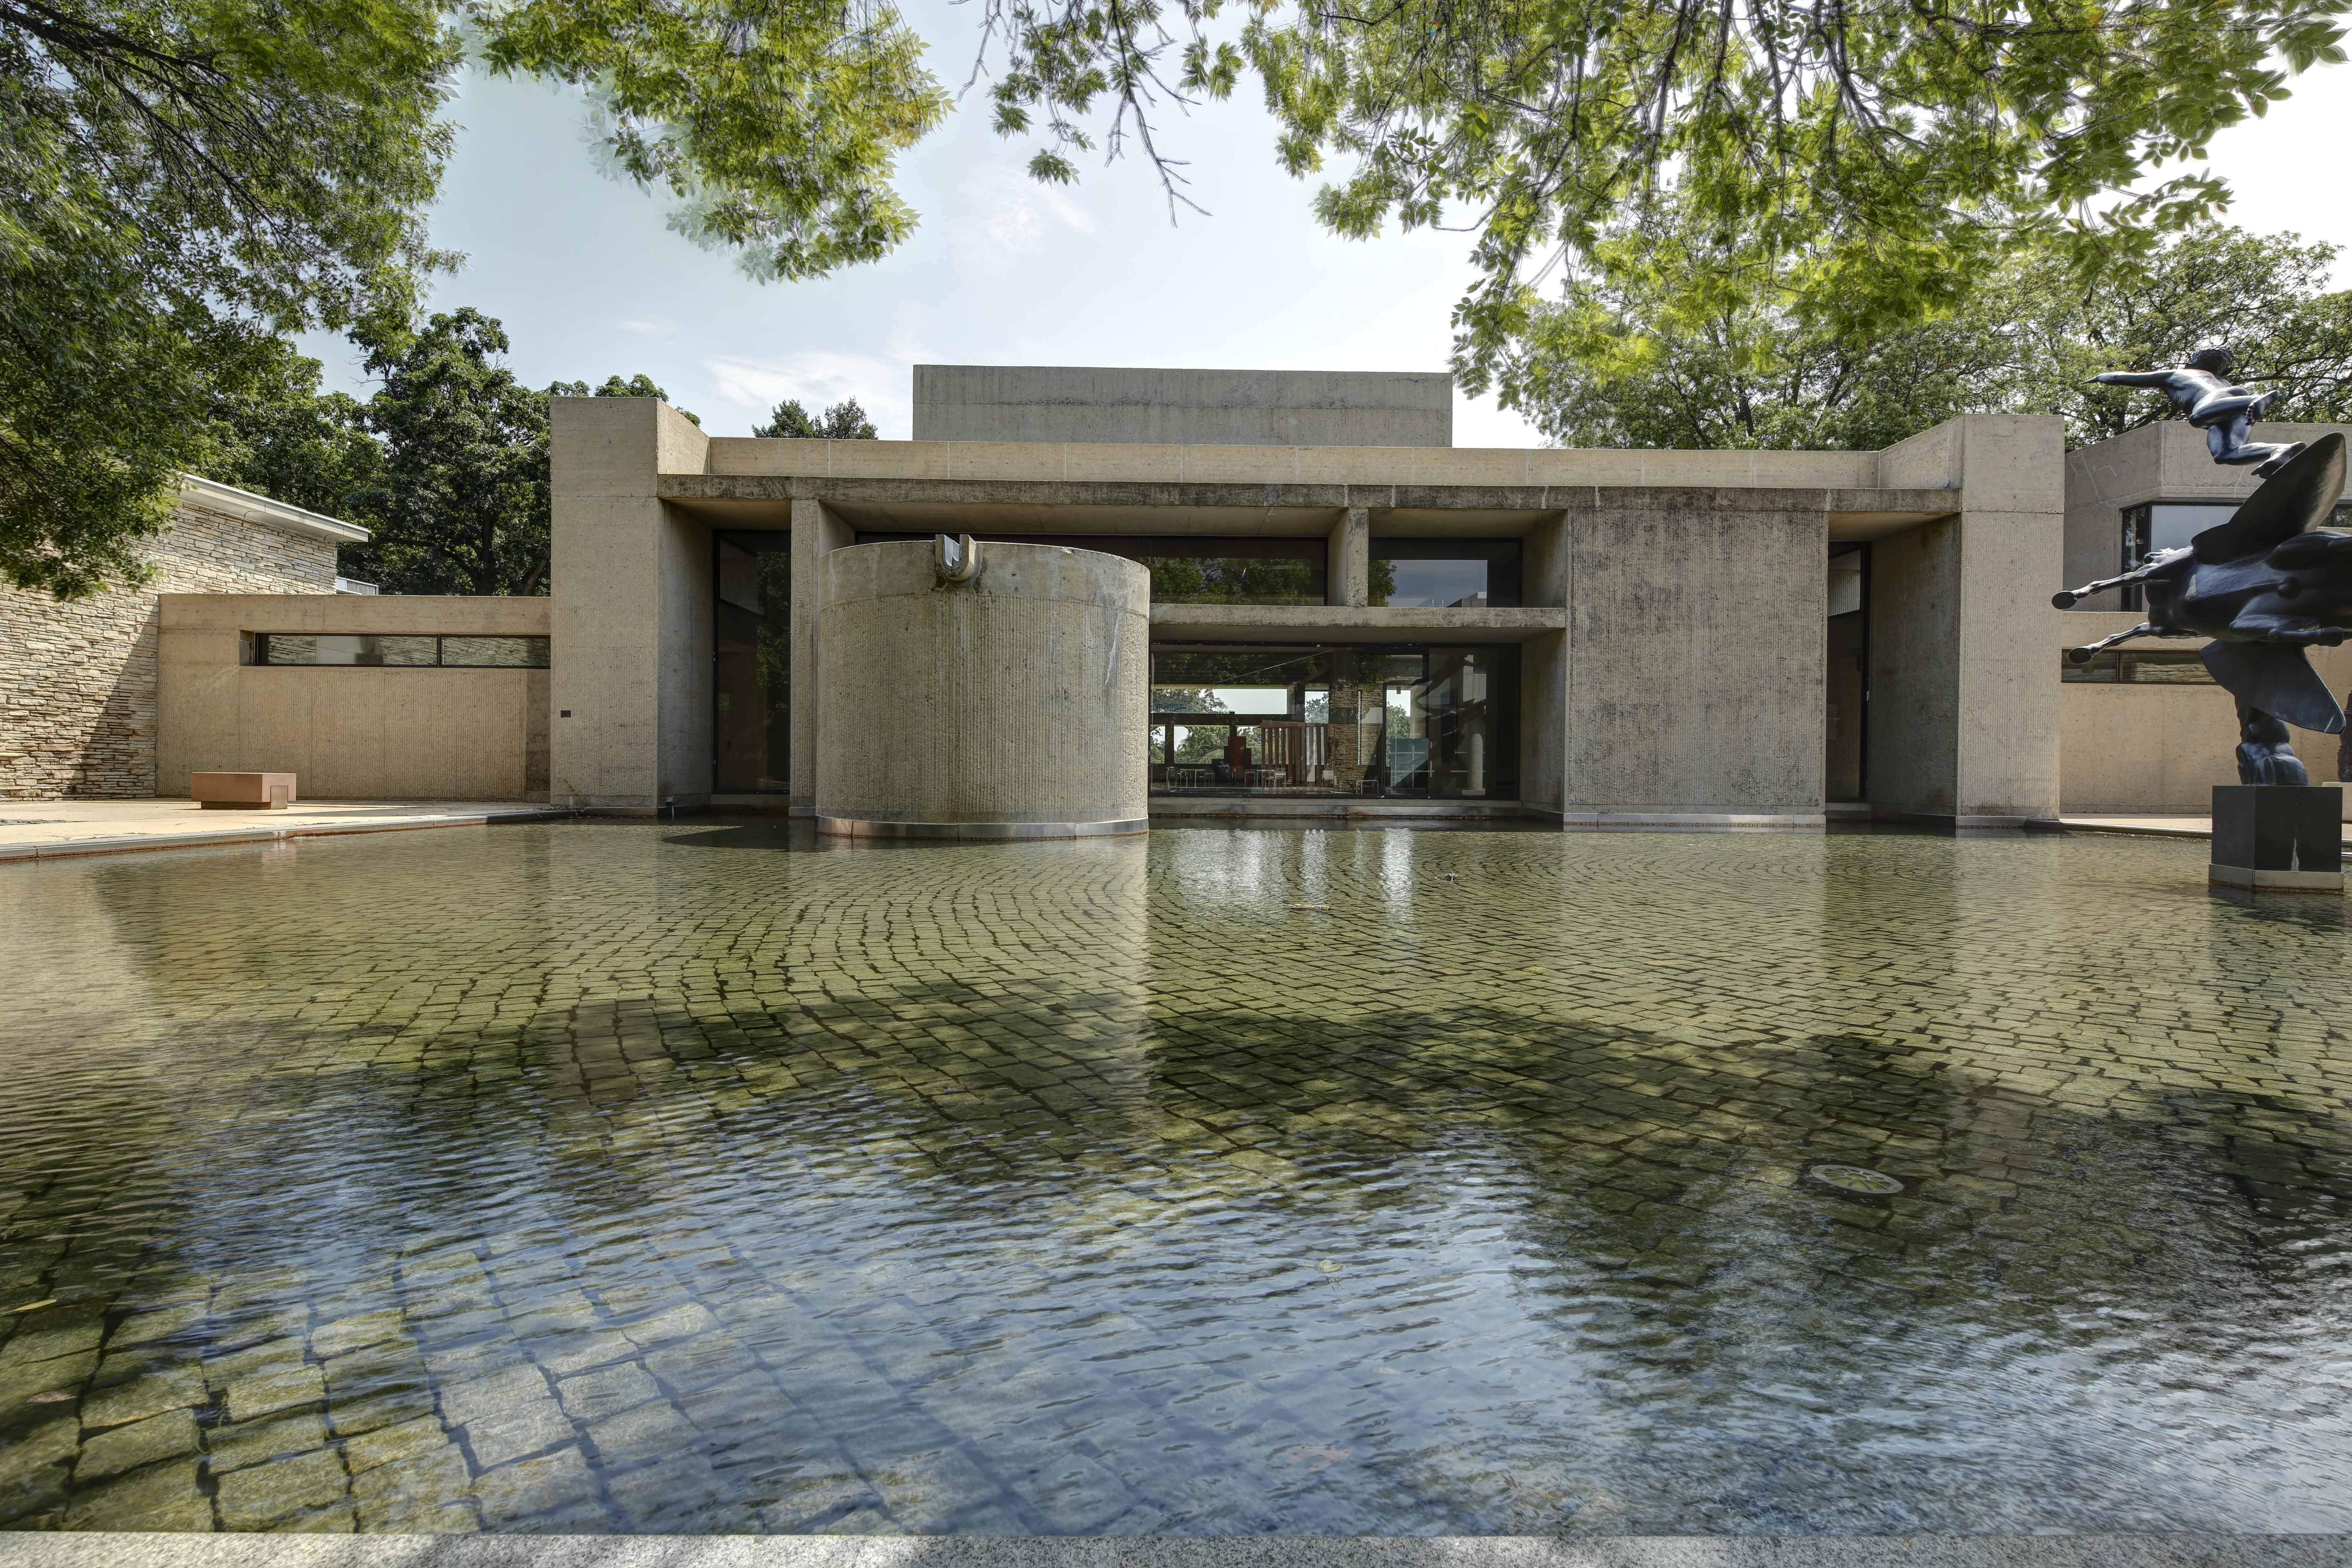 I.M. Pei's addition with a reflection pool adjacent to it.